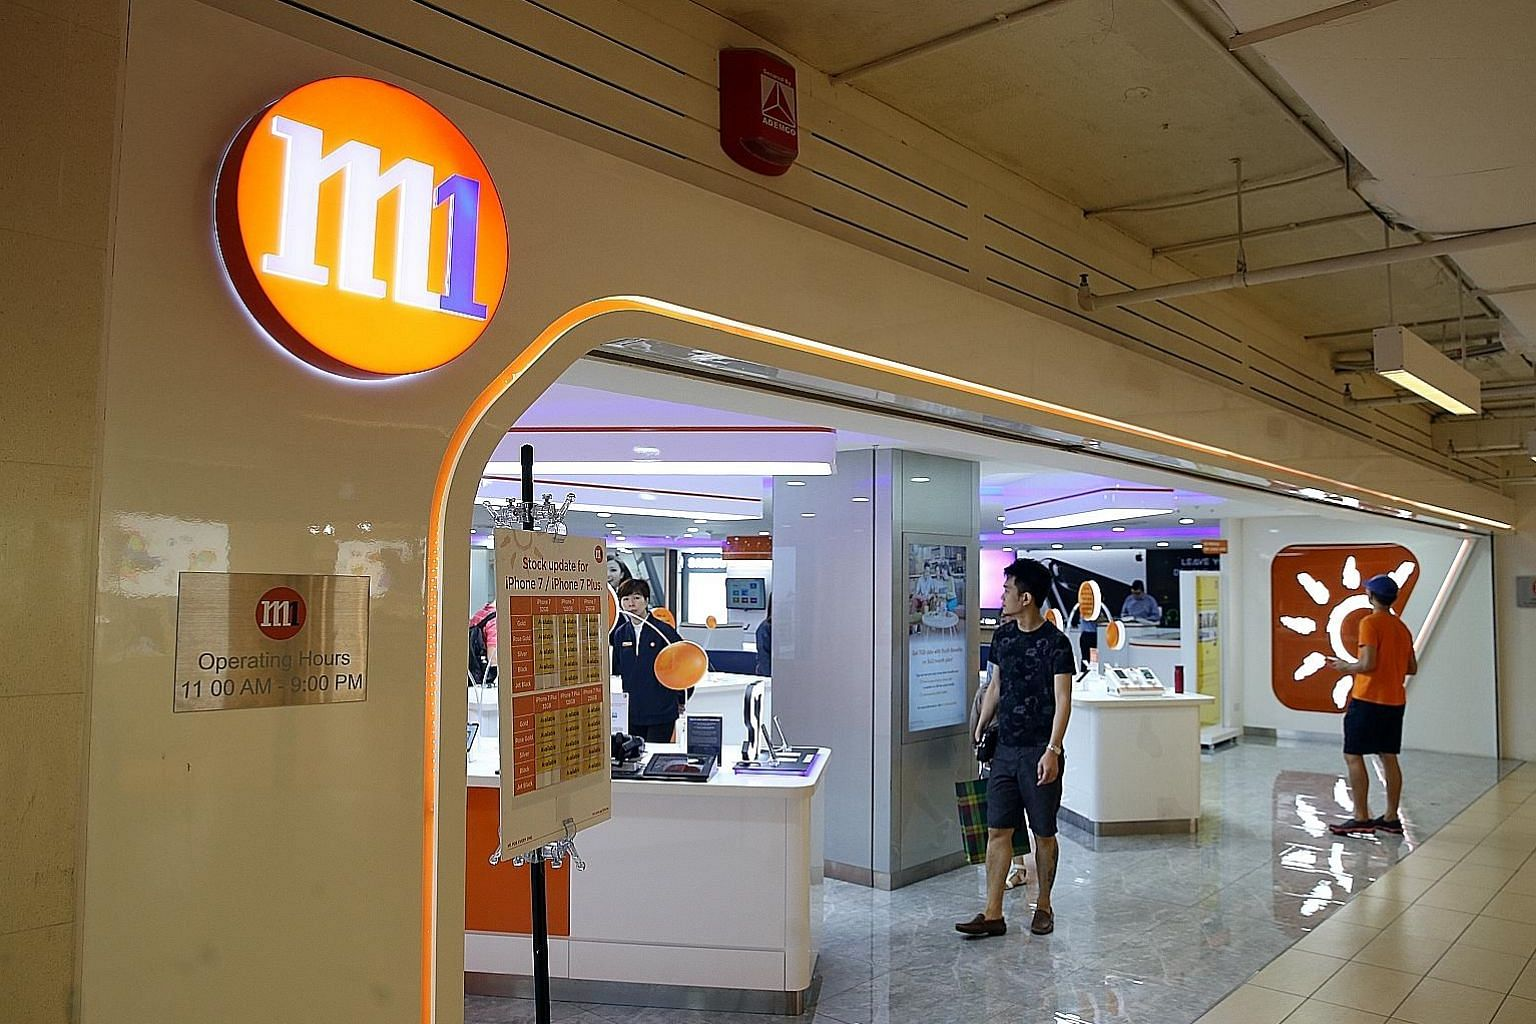 Speculation over the potential sale or privatisation of M1 has been rife in the market as Singapore readies itself for a new entrant in the telco market. As the smallest mobile operator here, M1 is the most vulnerable to the increased competition, an